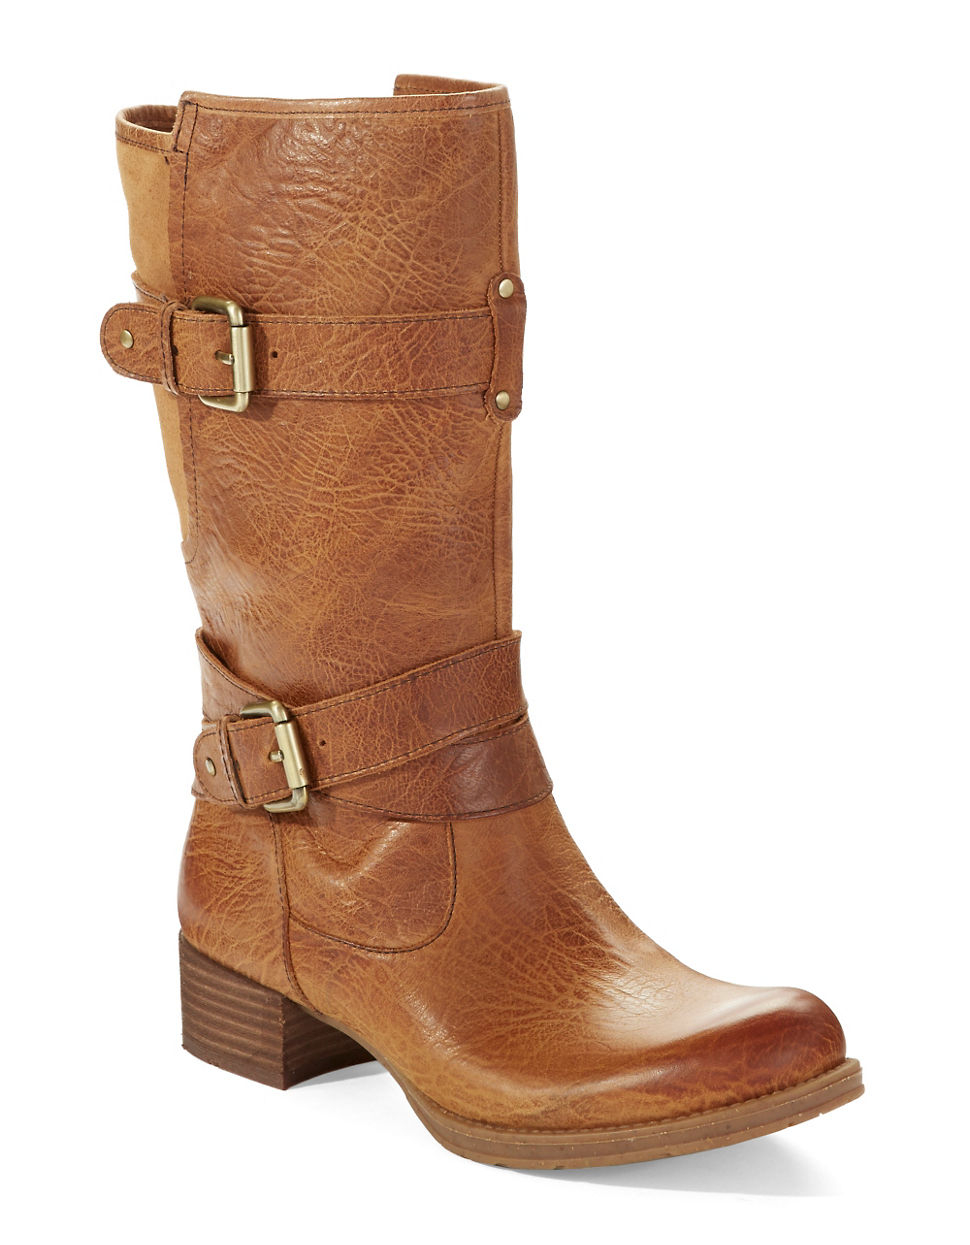 naya silence mid calf buckle boots in brown lyst